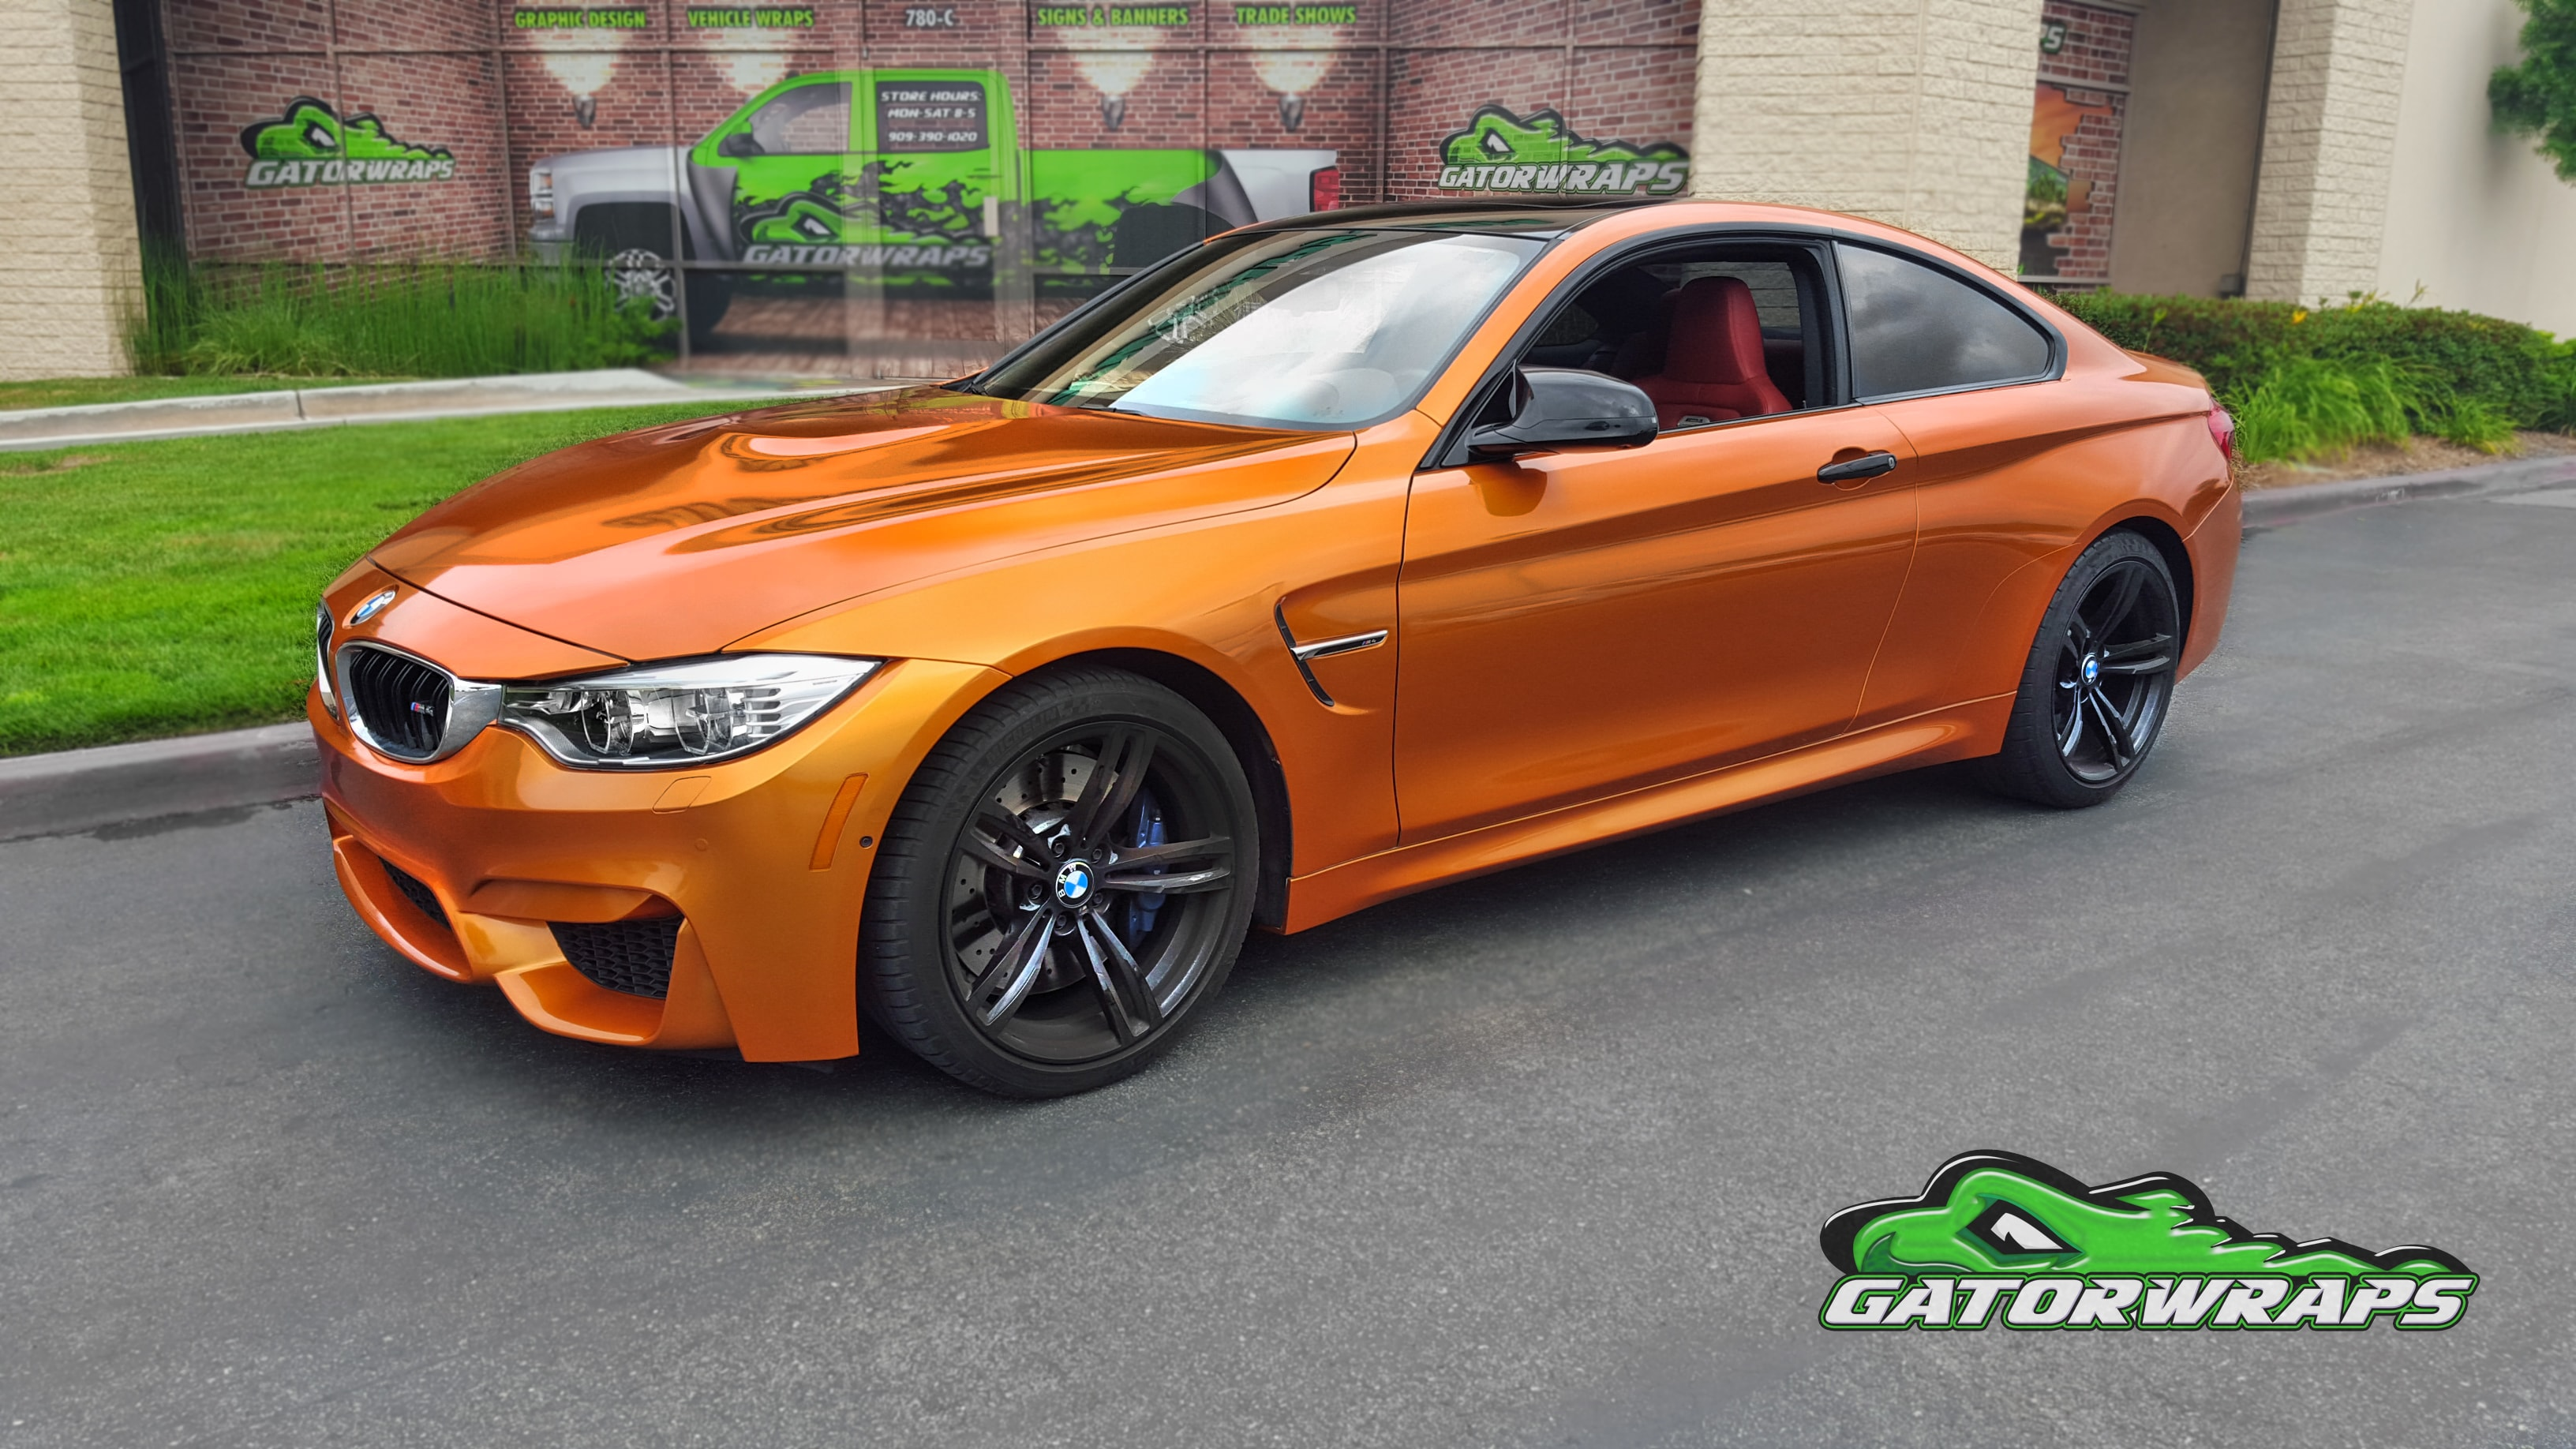 60 Quot 3m 1080 Gloss Liquid Copper G344 Vinyl Wrap